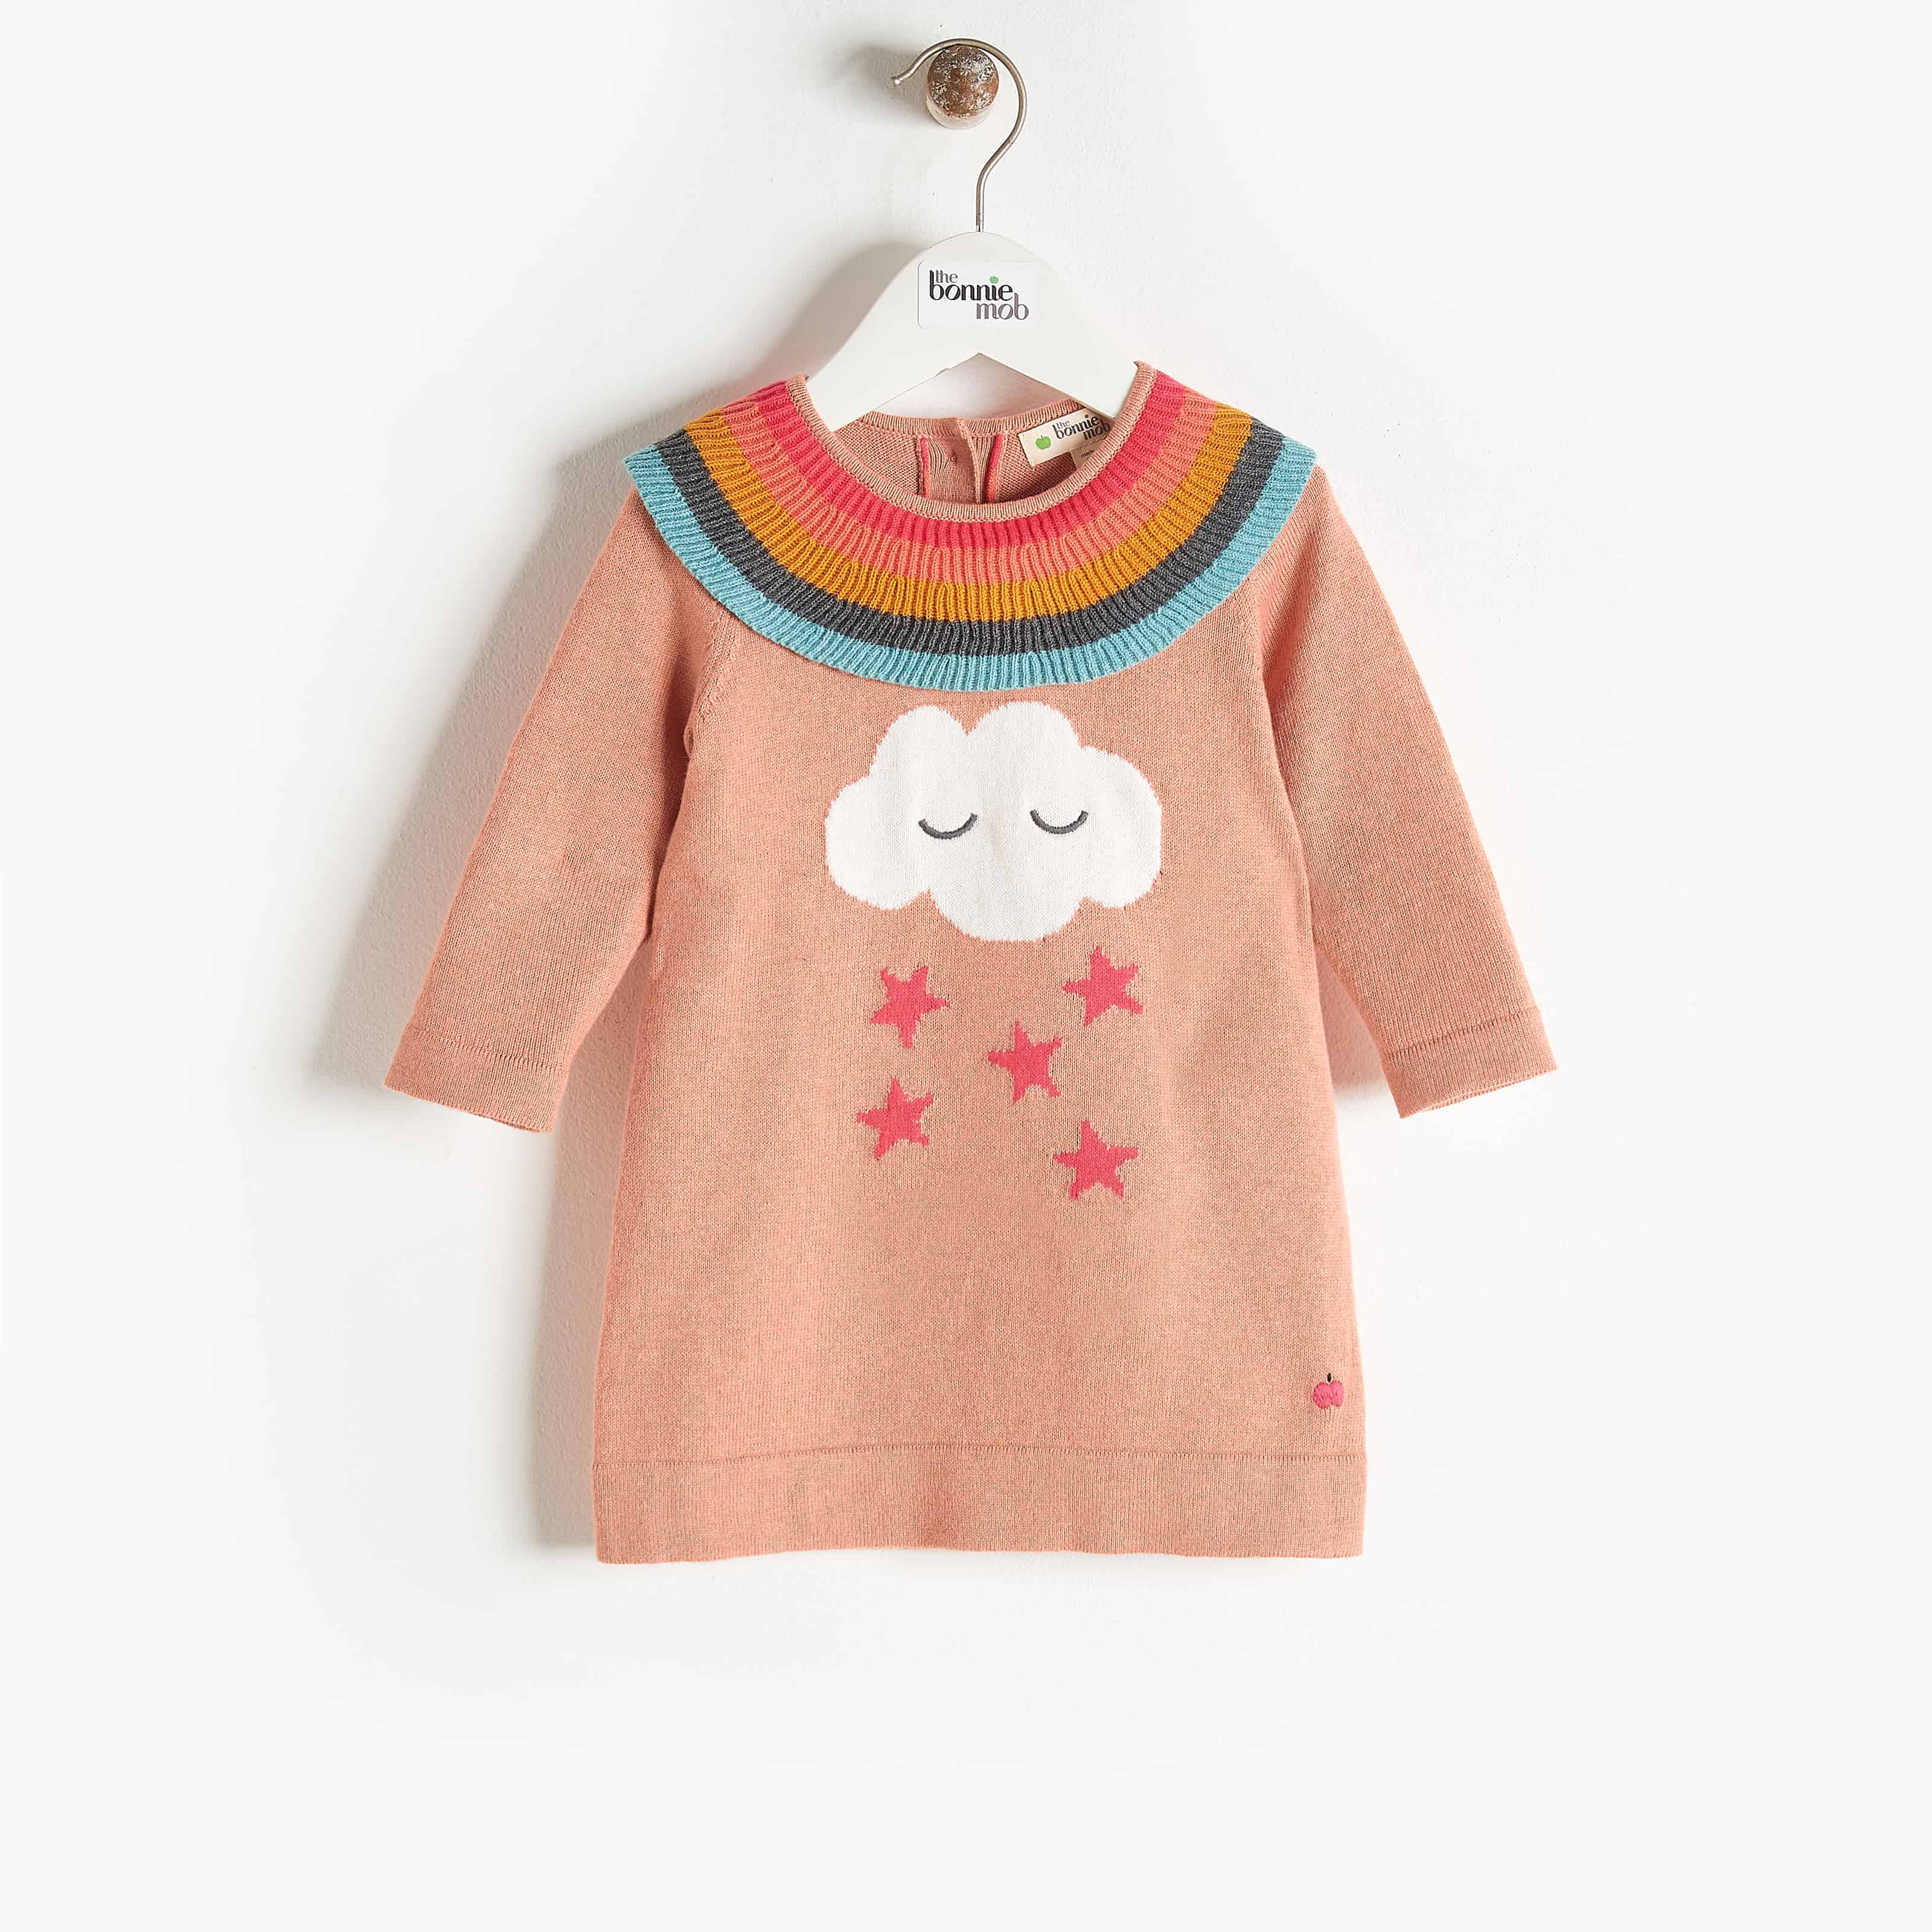 Bonnie Mob Grace Rainbow Frill Dress